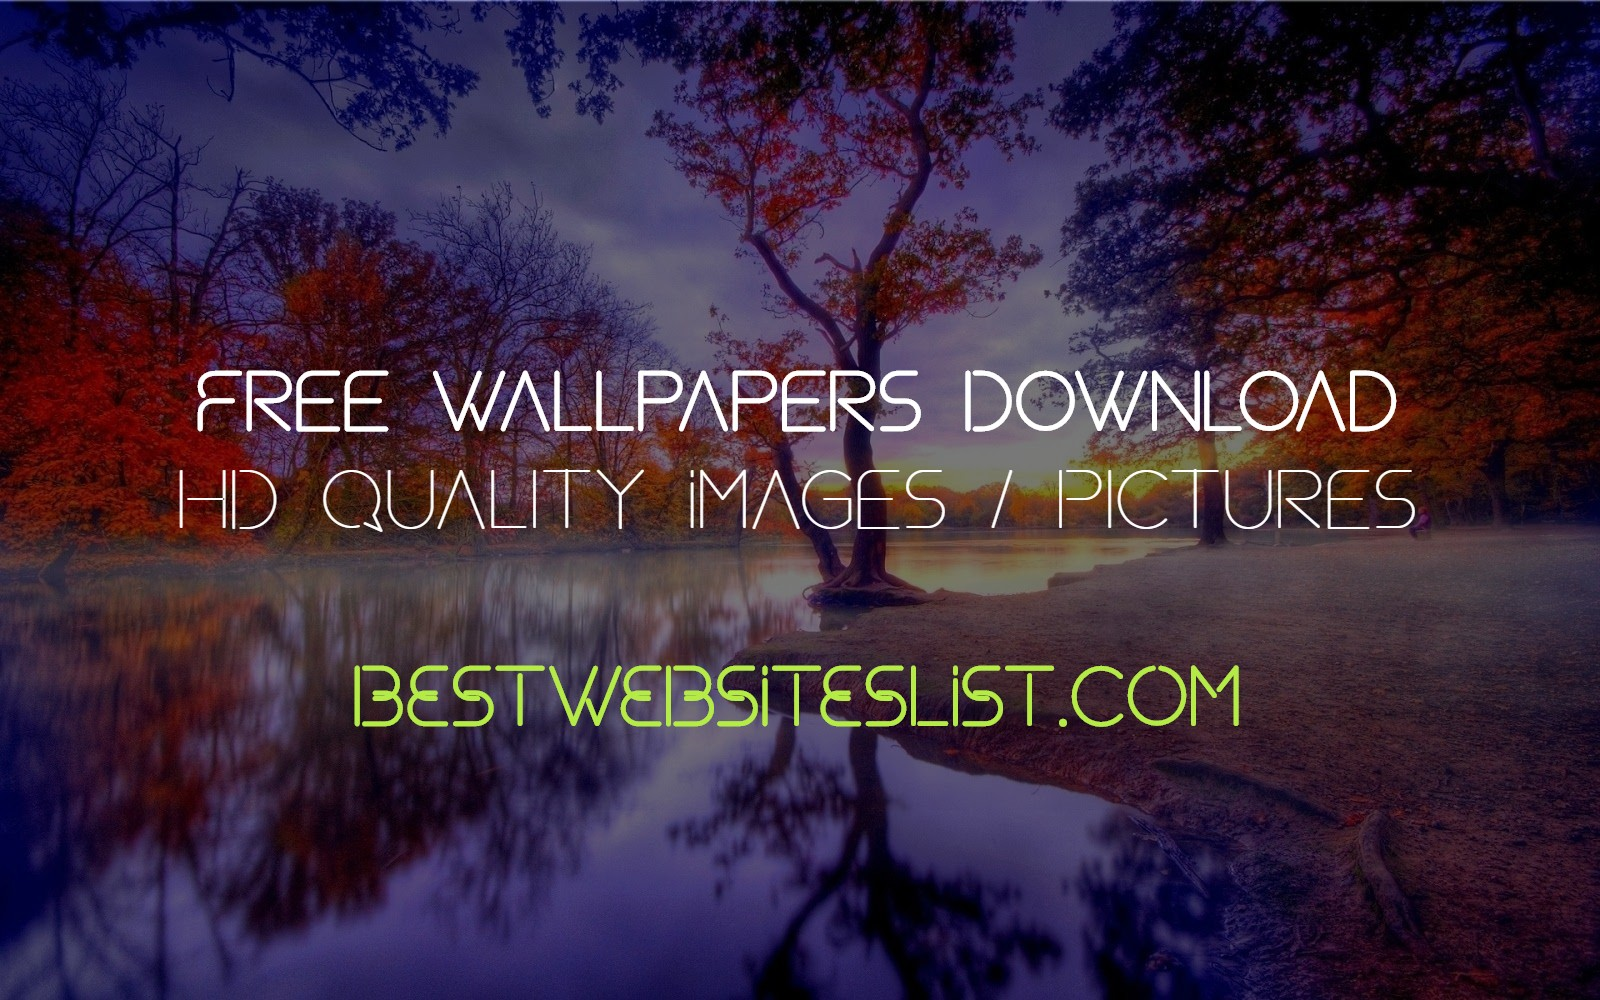 Free Wallpapers Download Websites - HD Quality Images / Pictures